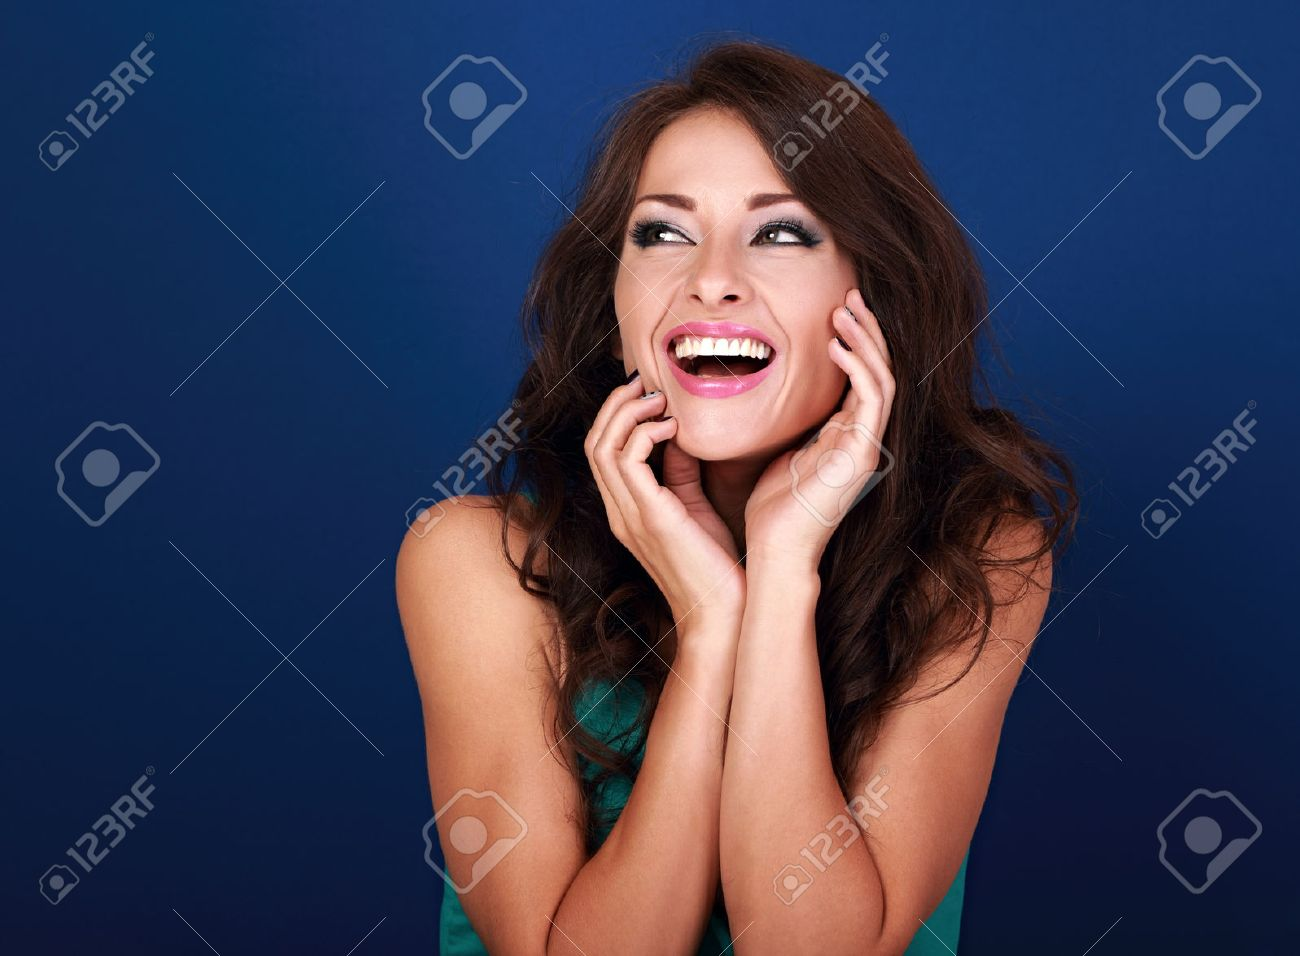 Laughing beautiful curly hair style woman looking with open mouth on bright blue background - 62687319